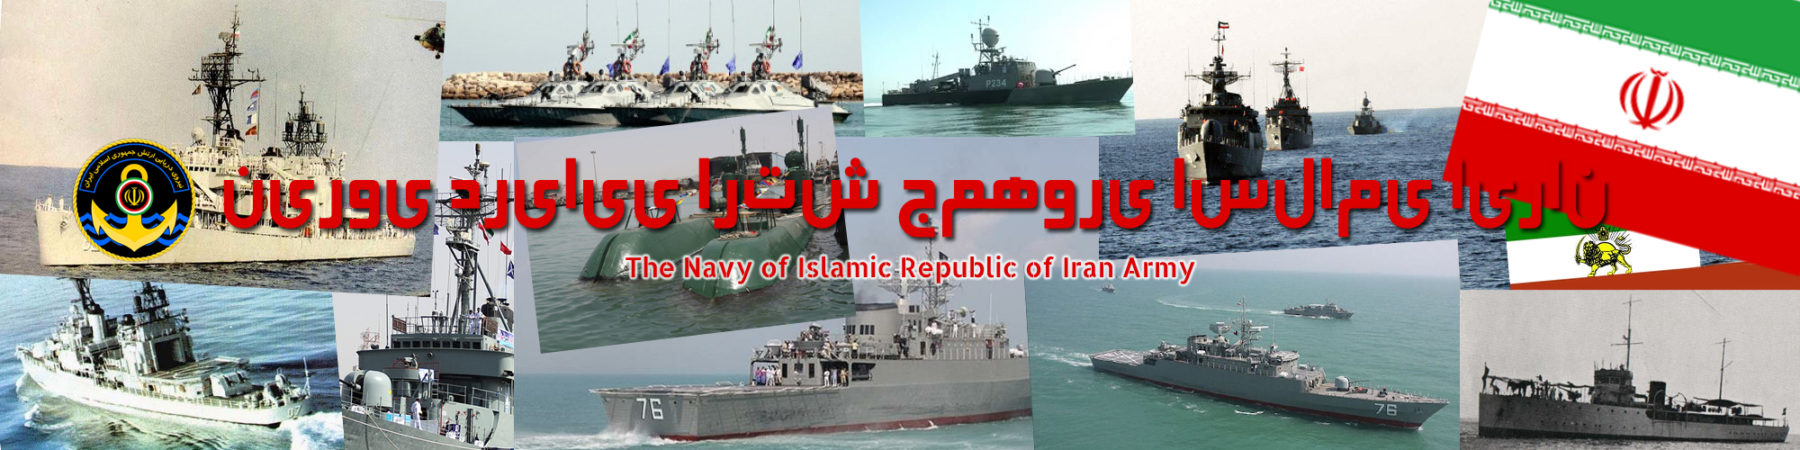 [New Page] The Iranian Navy